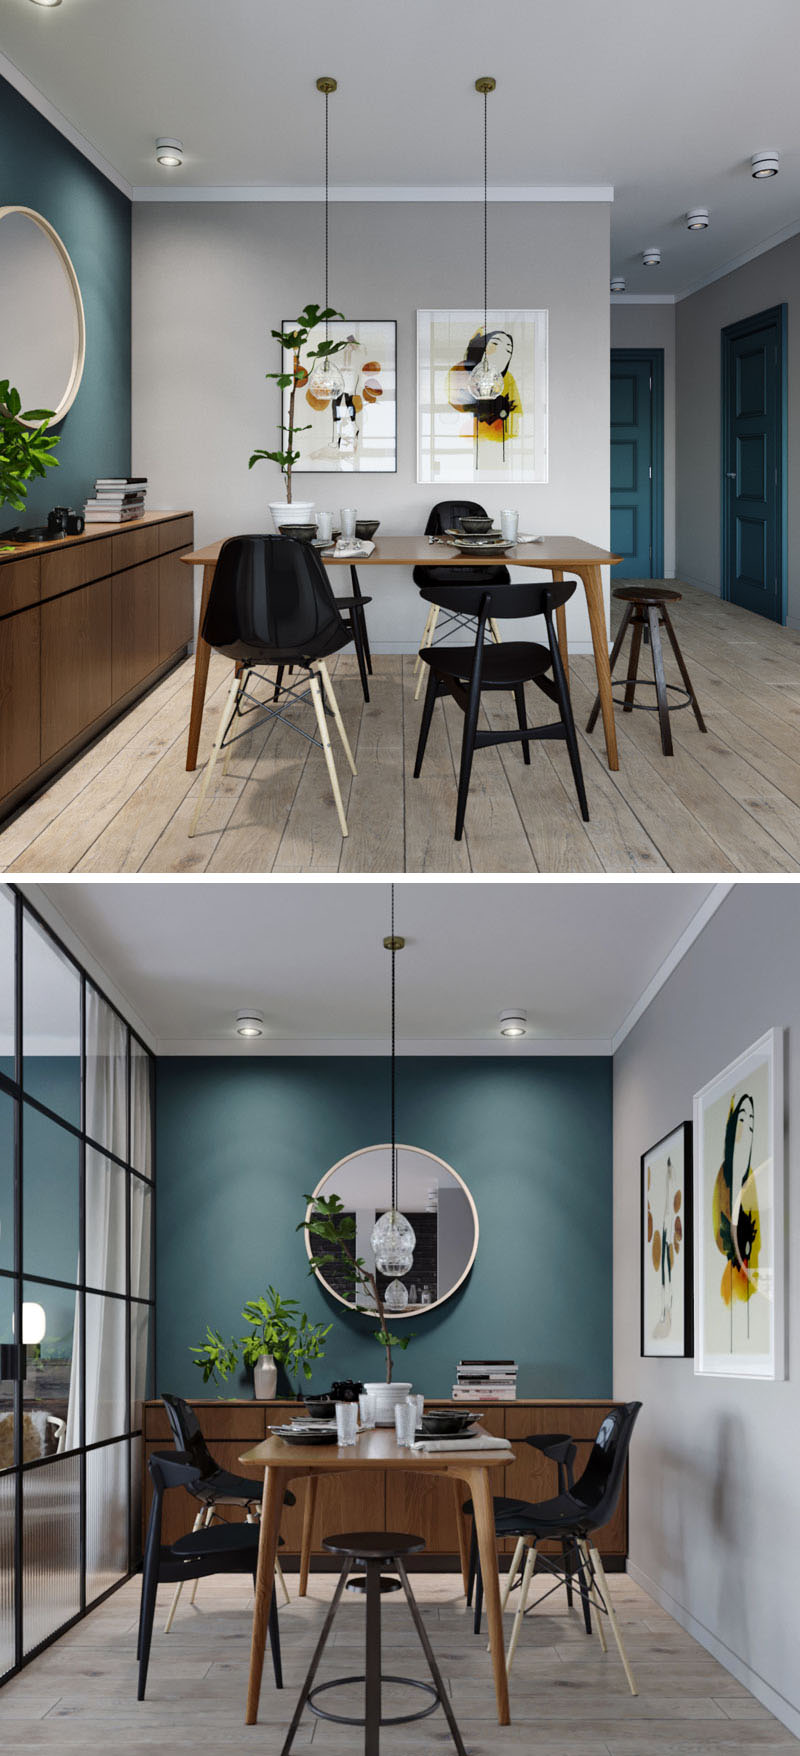 Salle A Manger Bleu Canard Of Mur Bleu Canard Et Style Loft Blog D Co Clem Around